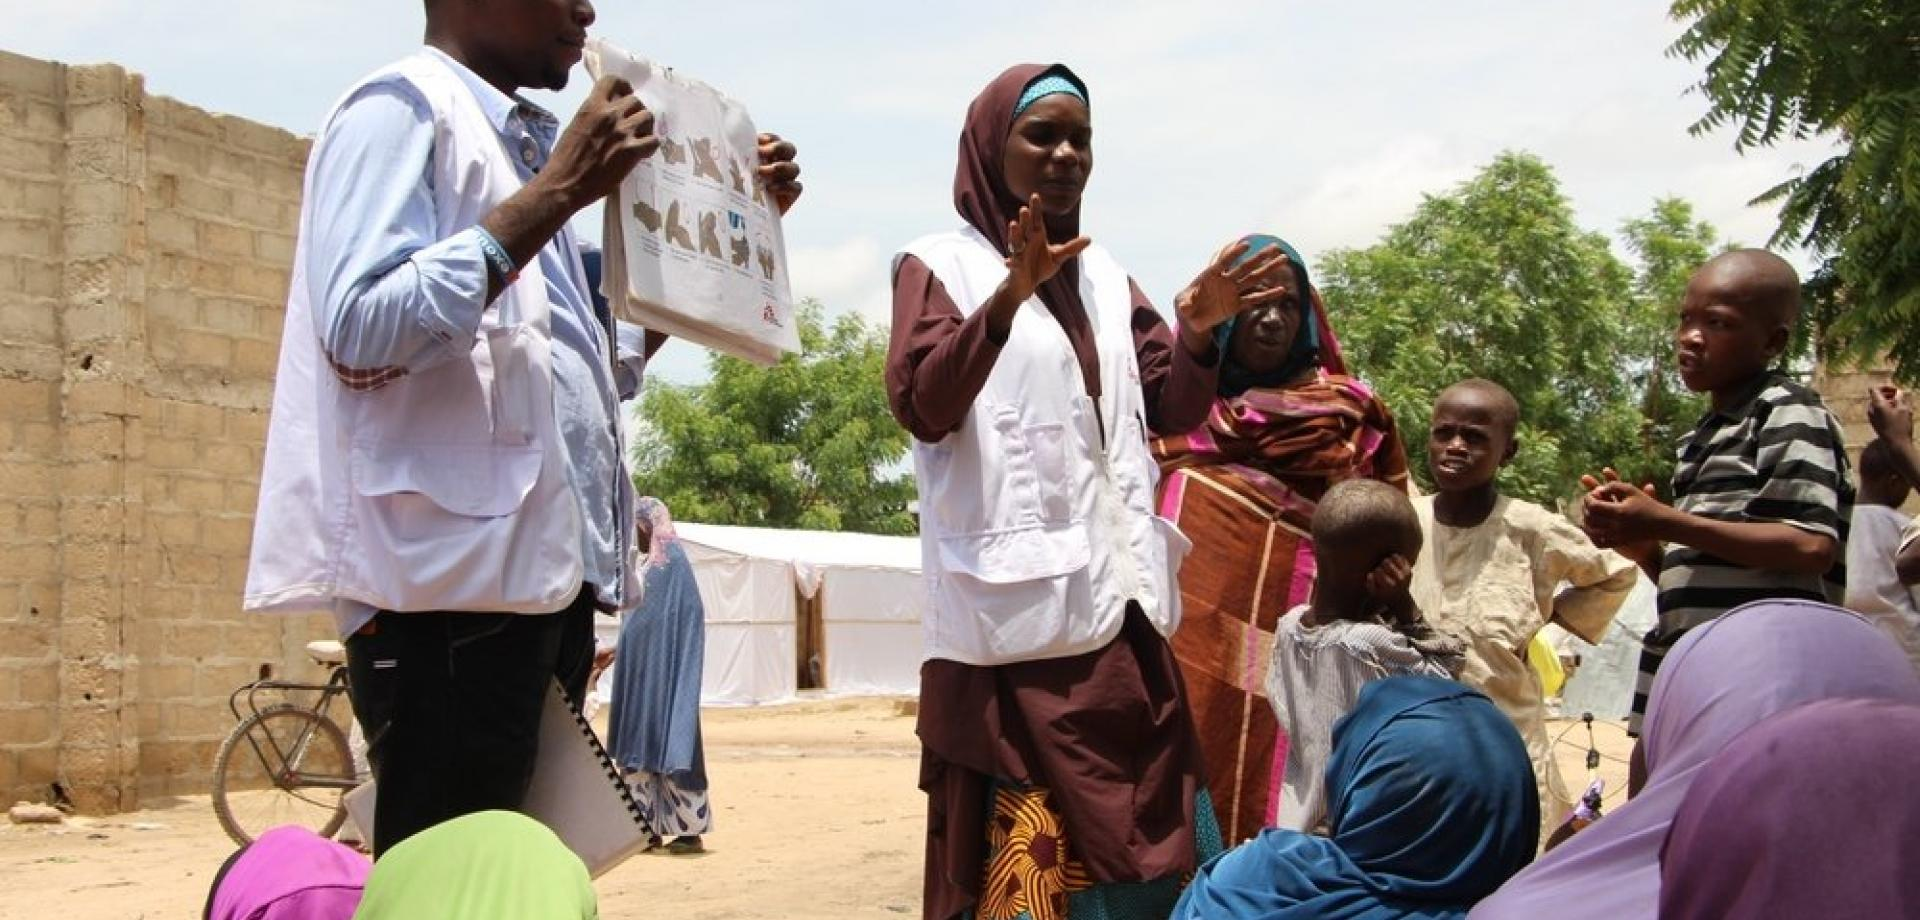 Health promotion staff speaking to displaced people in Borno State